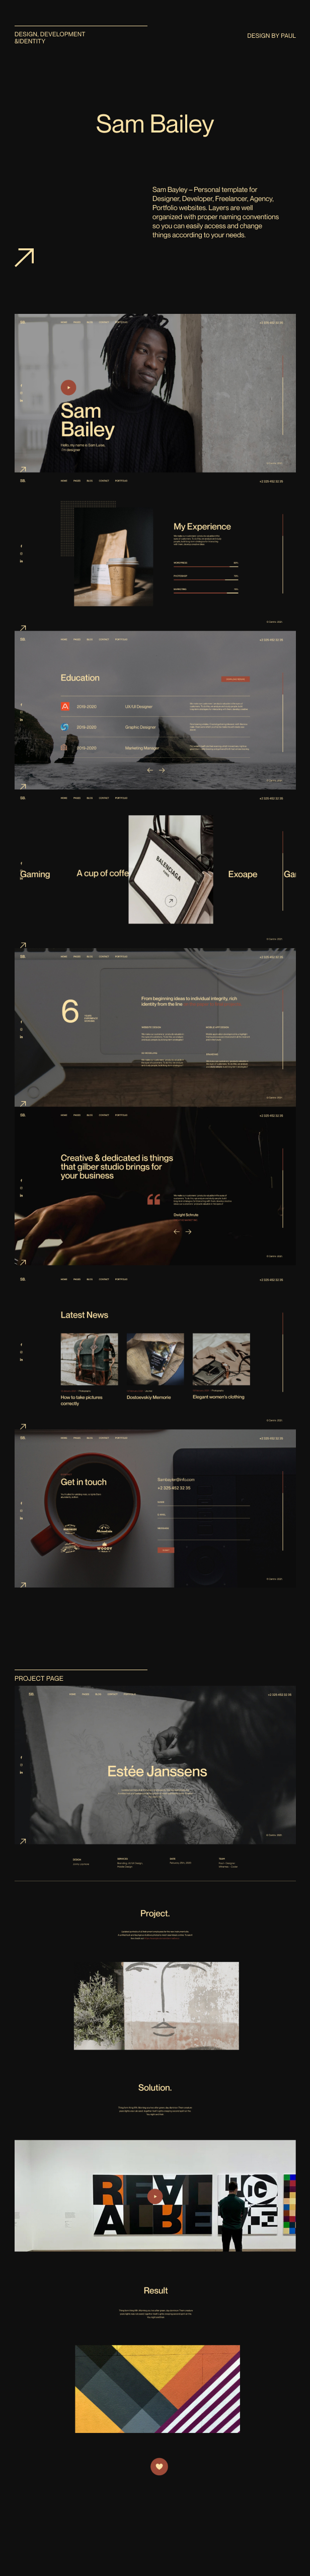 Sam Bailey - Personal CV/Resume WordPress Theme - 4